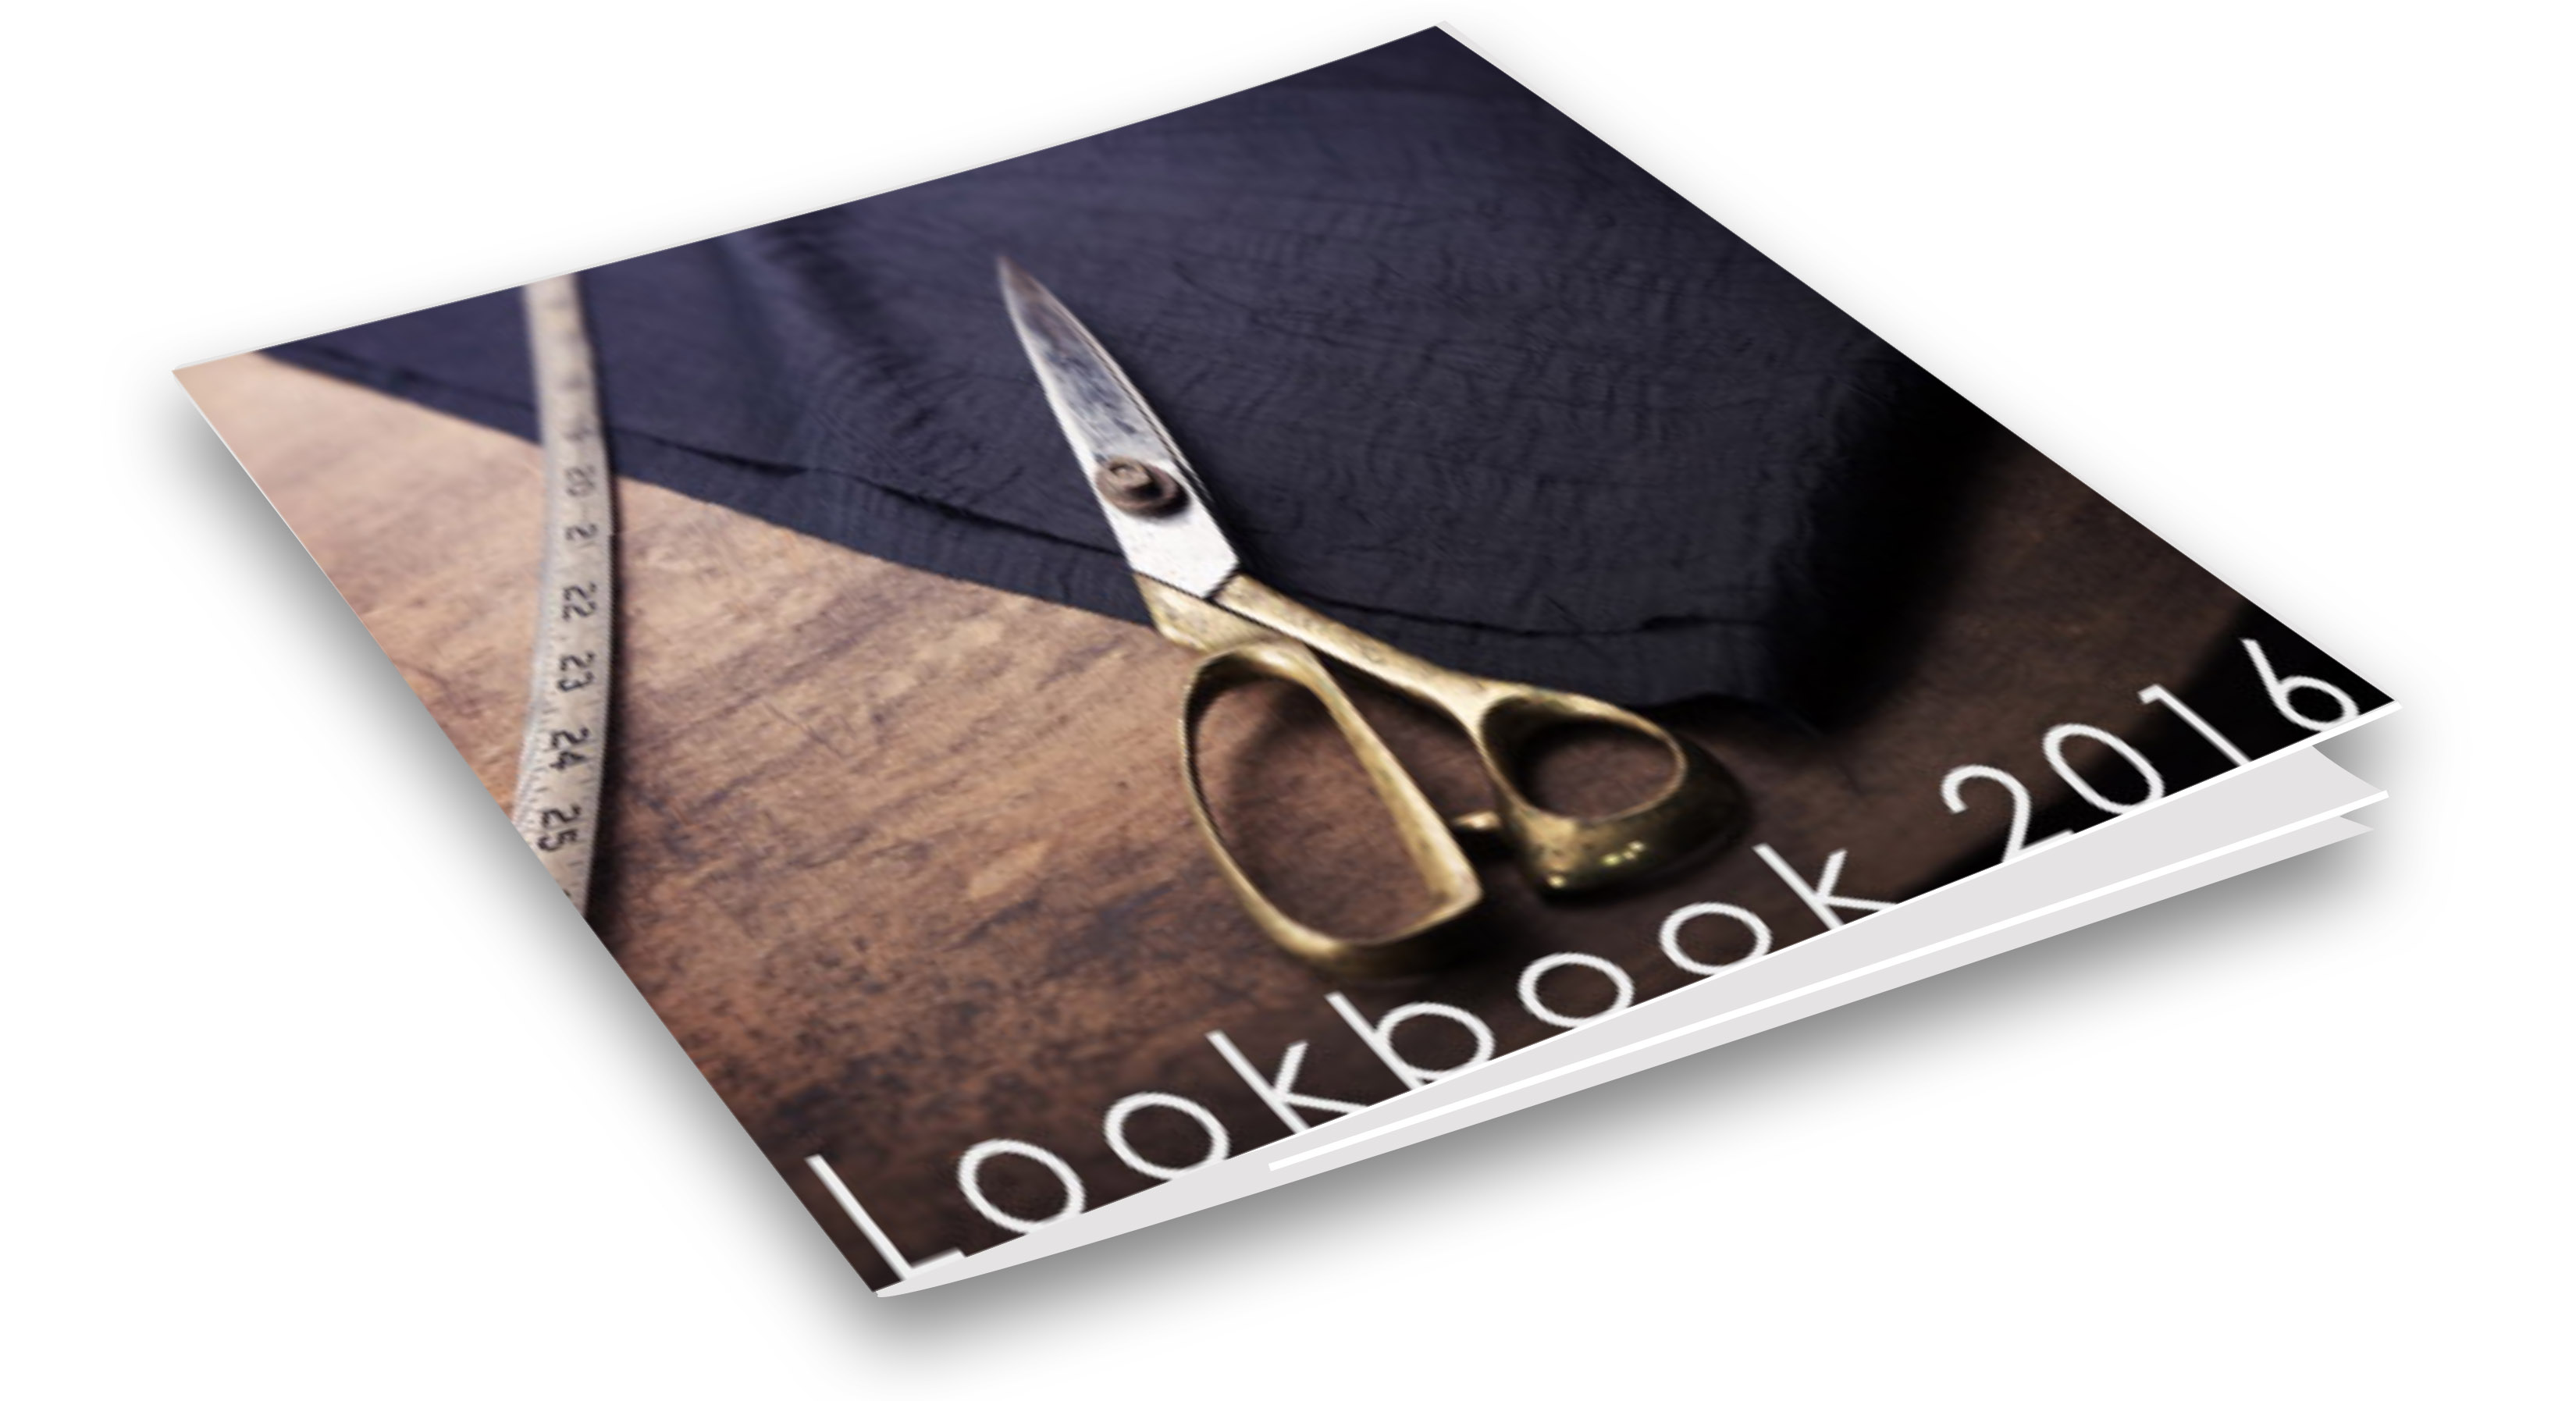 lookbook-booklet-photo2.jpg